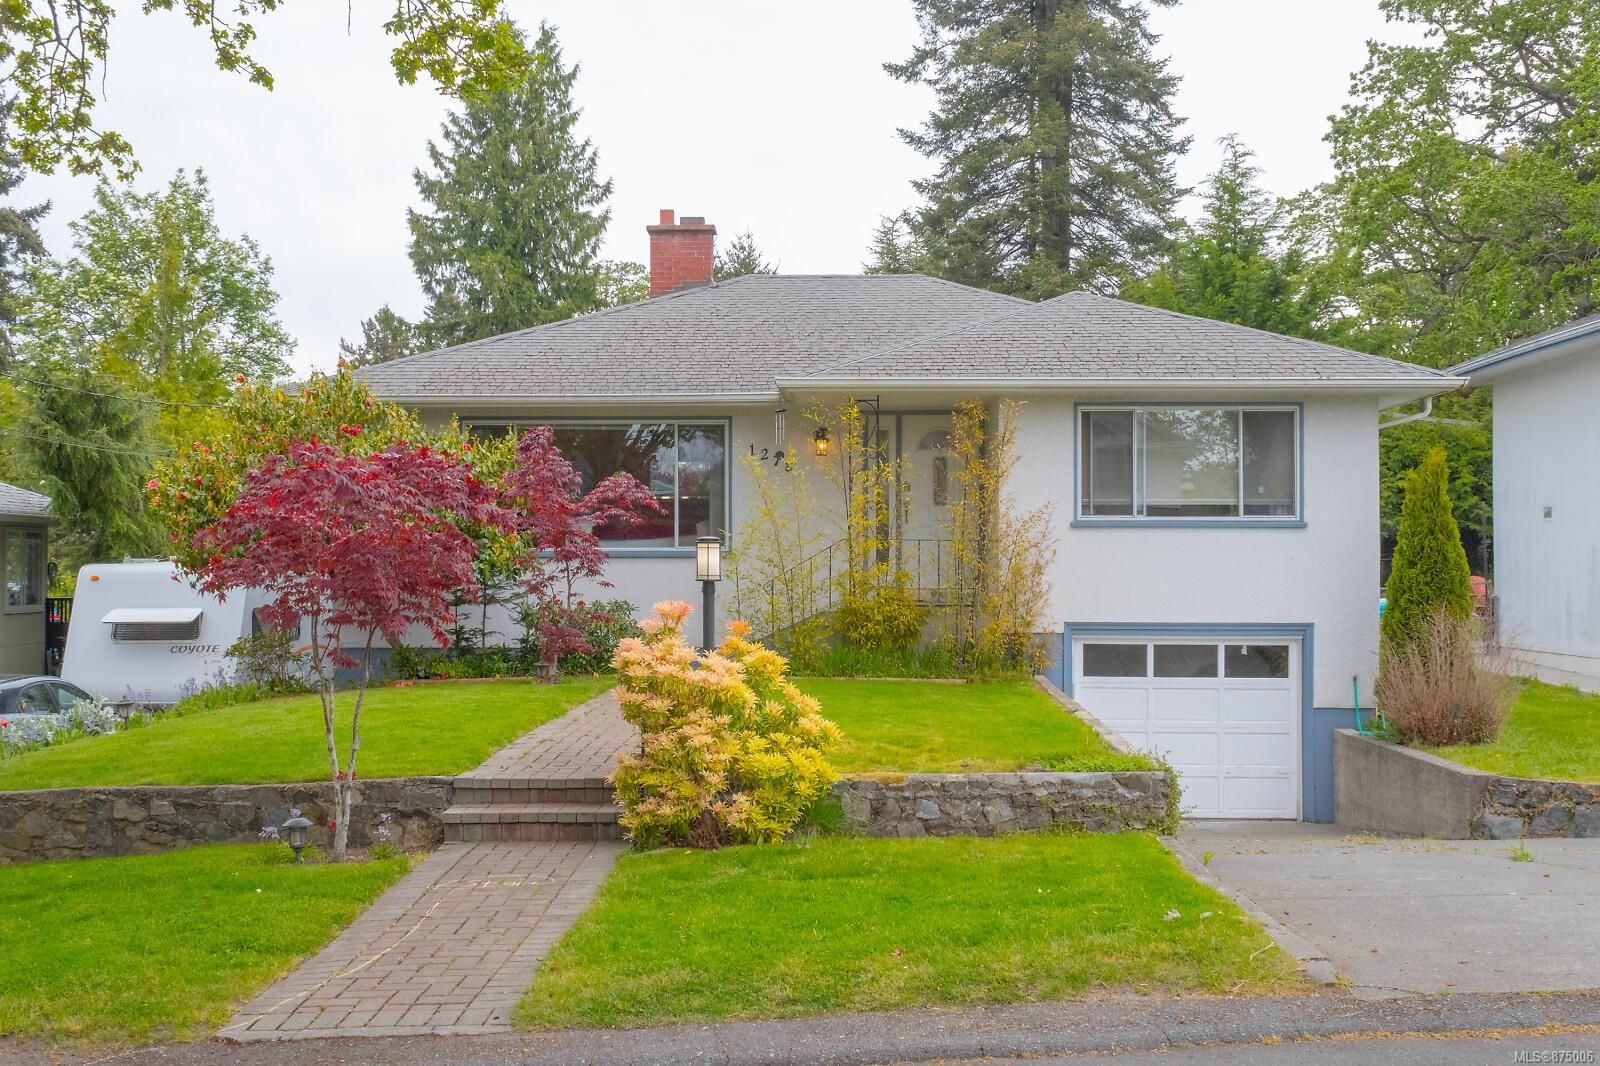 Main Photo: 1278 Pike St in Saanich: SE Maplewood House for sale (Saanich East)  : MLS®# 875006